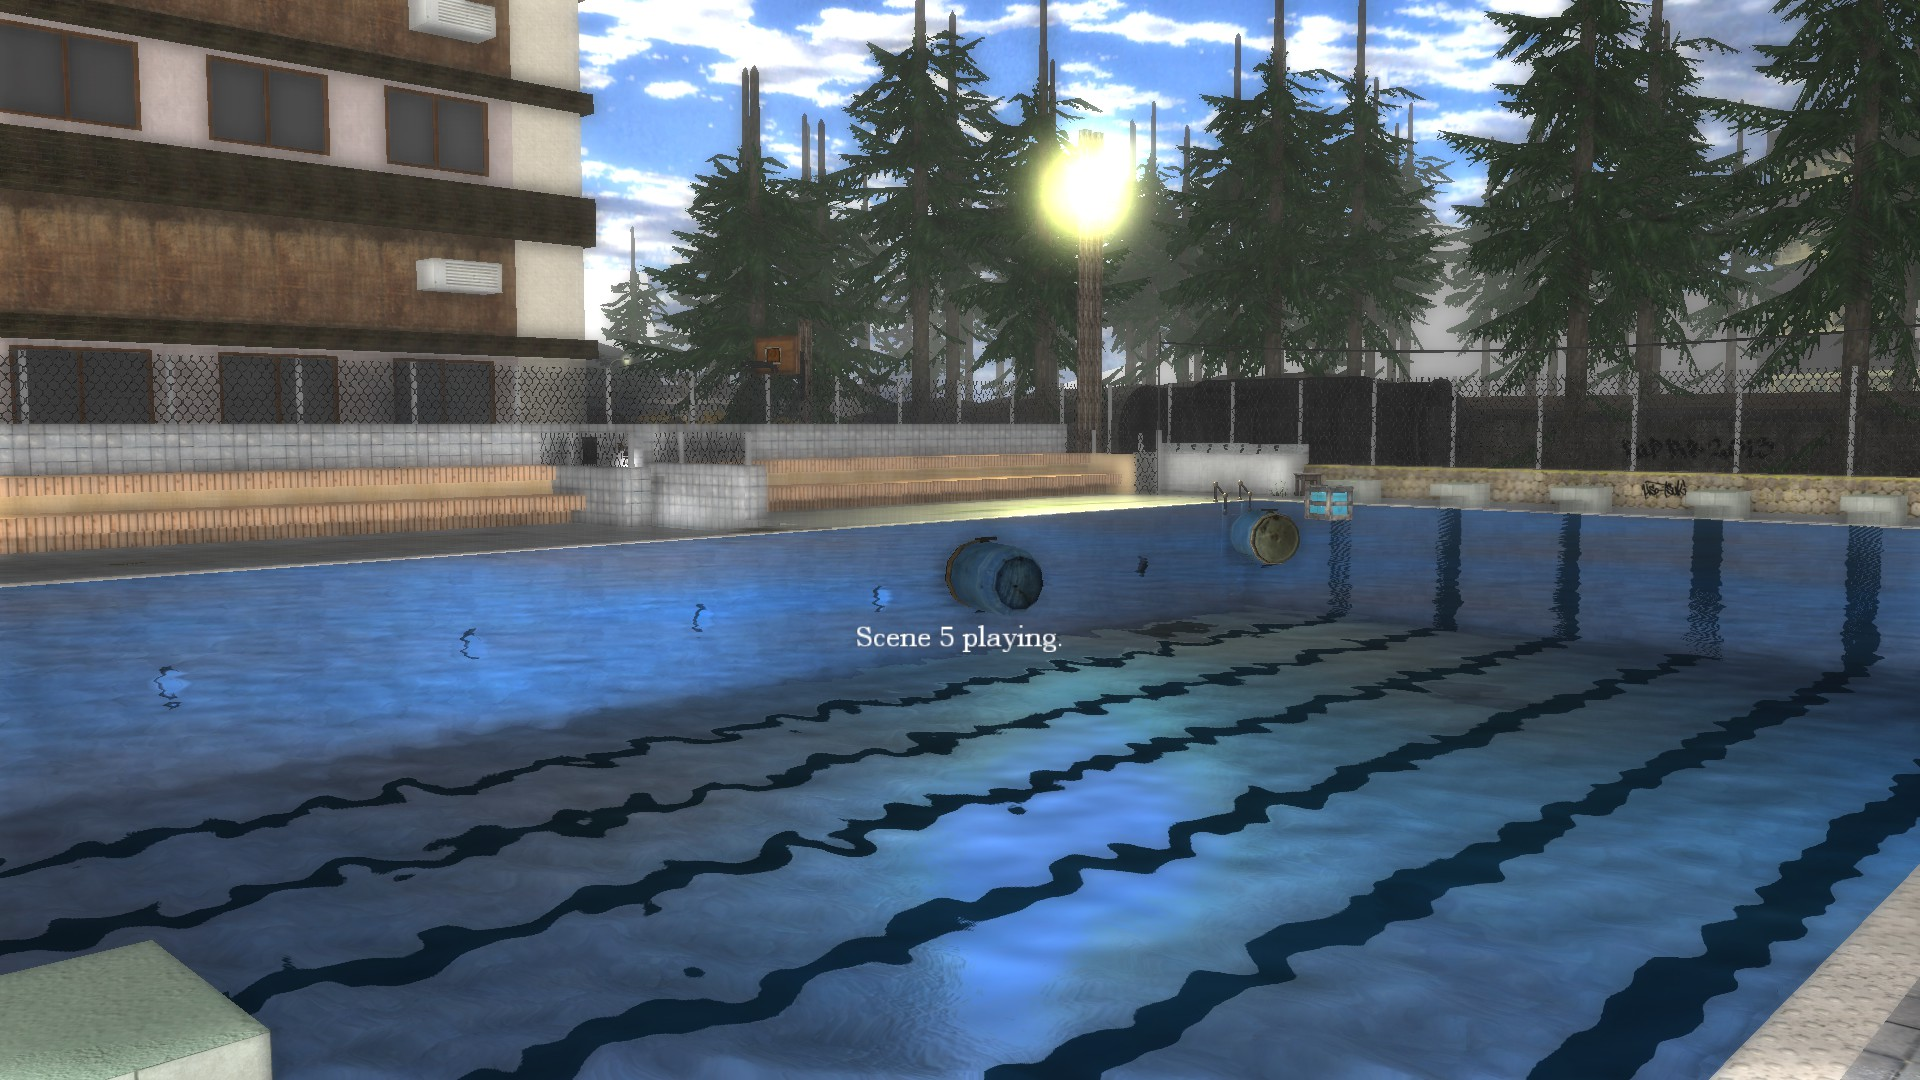 Image from the benchmark. Pool.